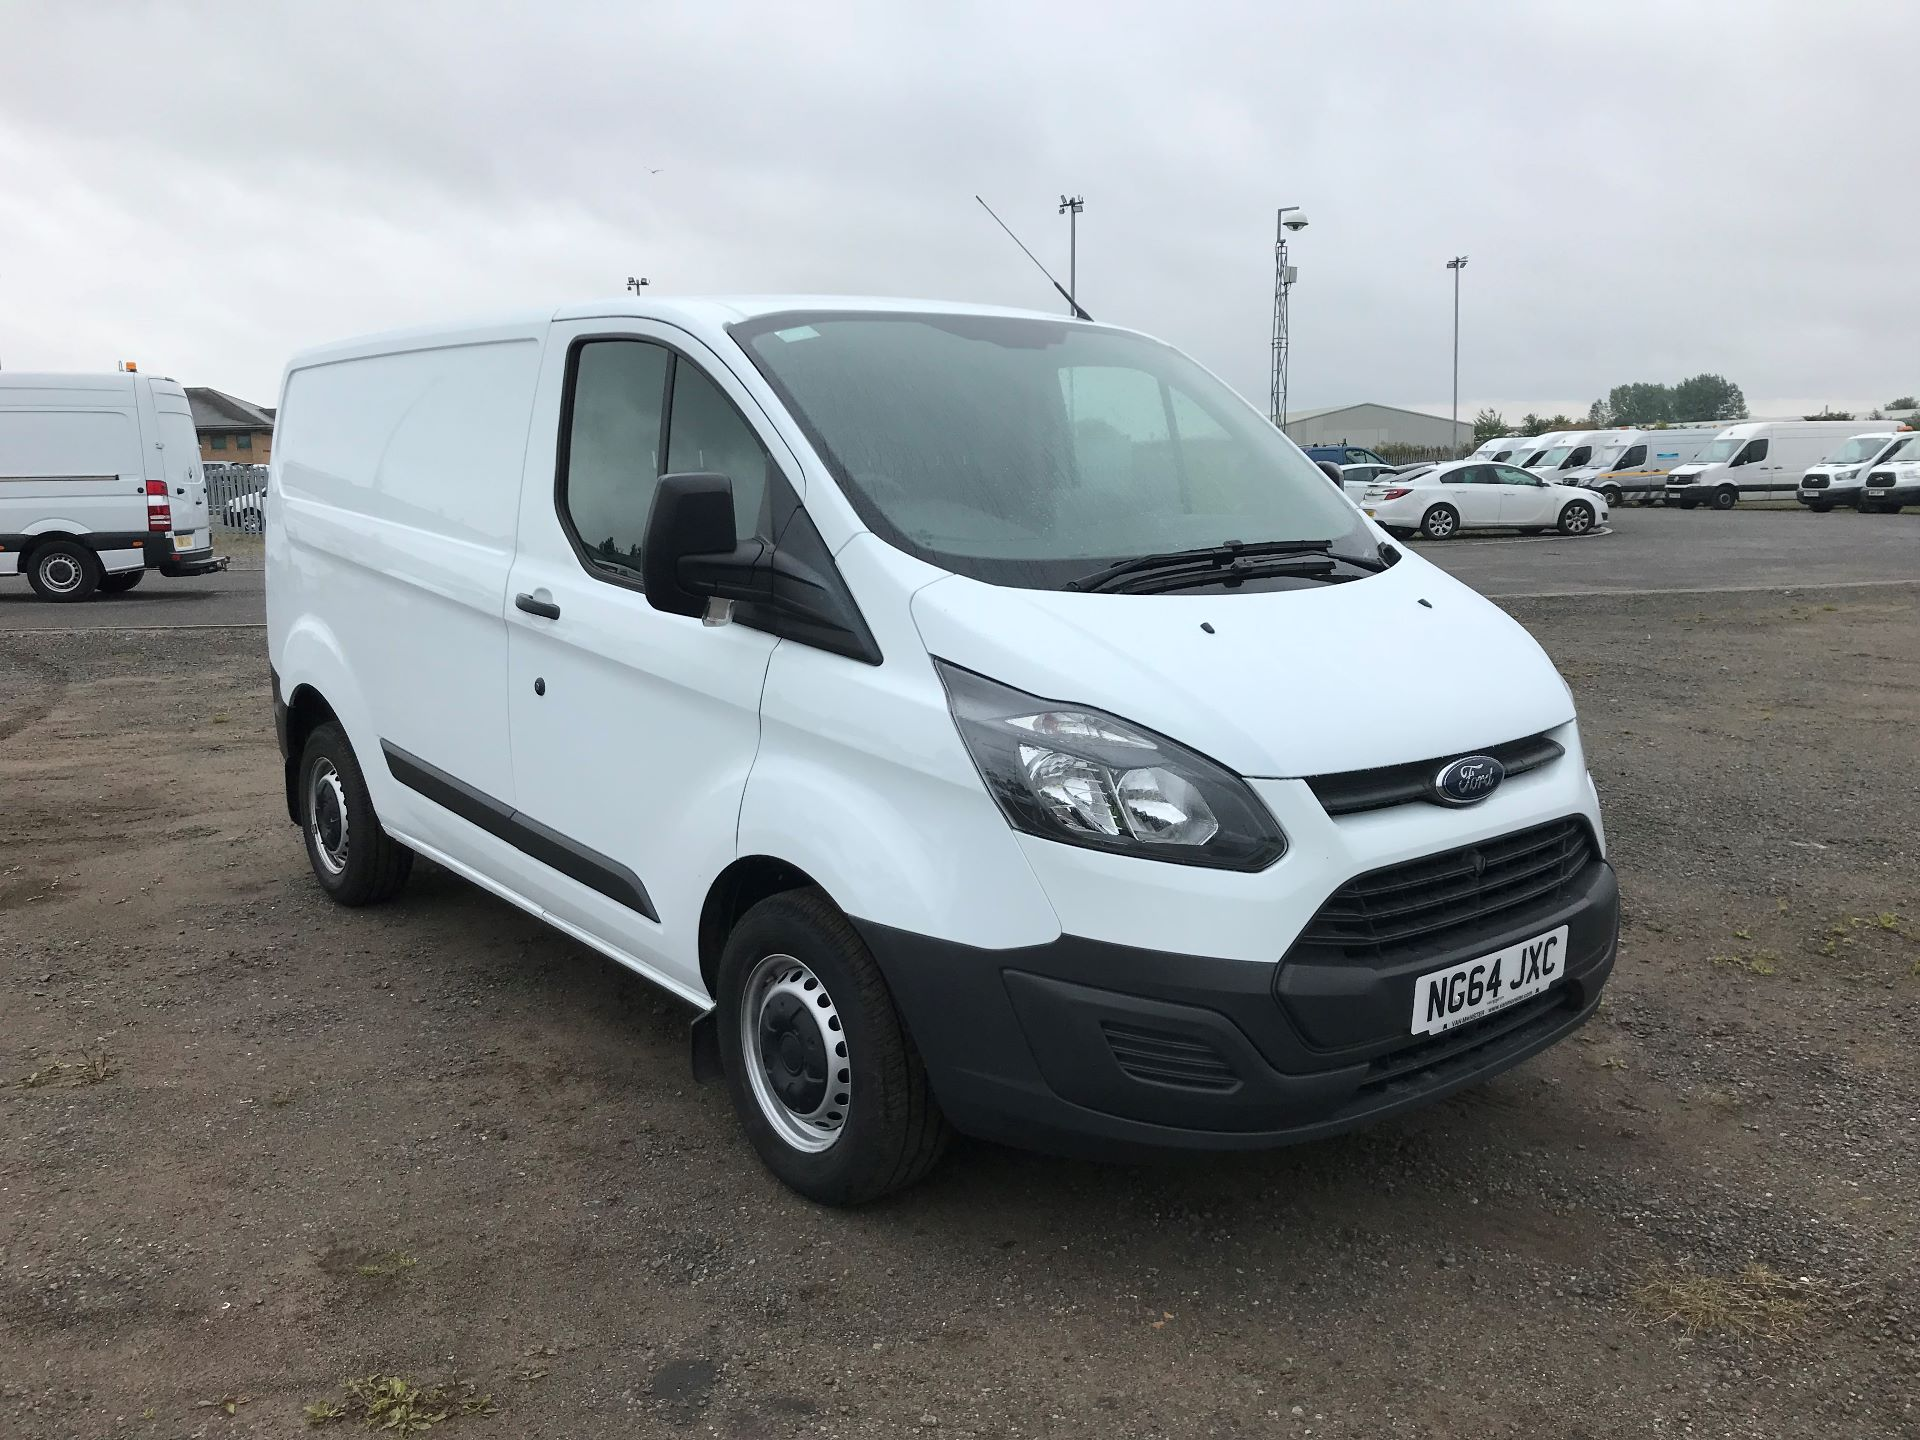 2015 Ford Transit Custom 2.2 Tdci 100Ps Low Roof Van (NG64JXC)